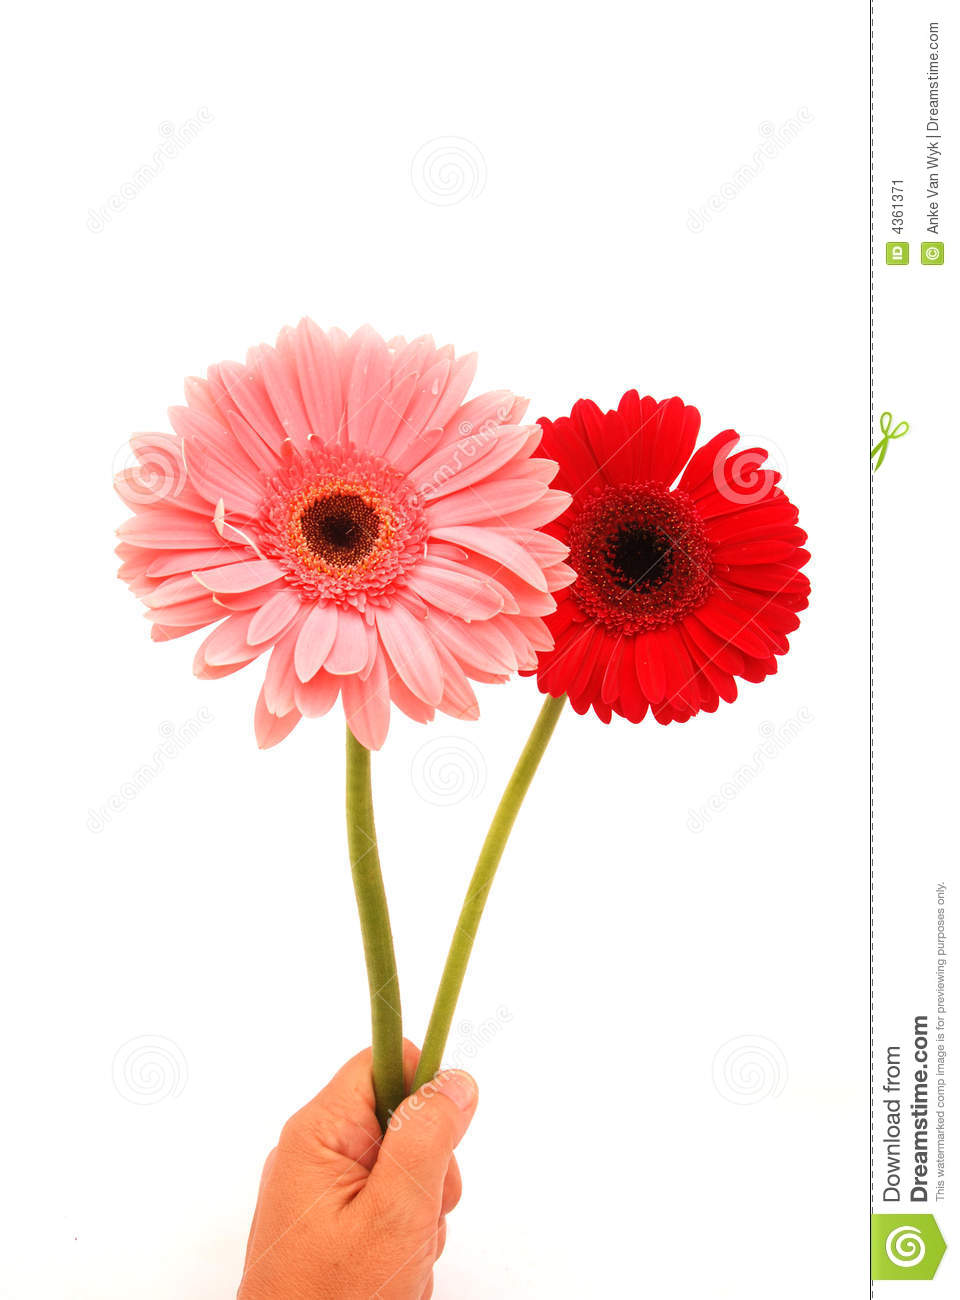 Happy birthday flowers hand stock image image of daisy gerbera happy birthday flowers hand izmirmasajfo